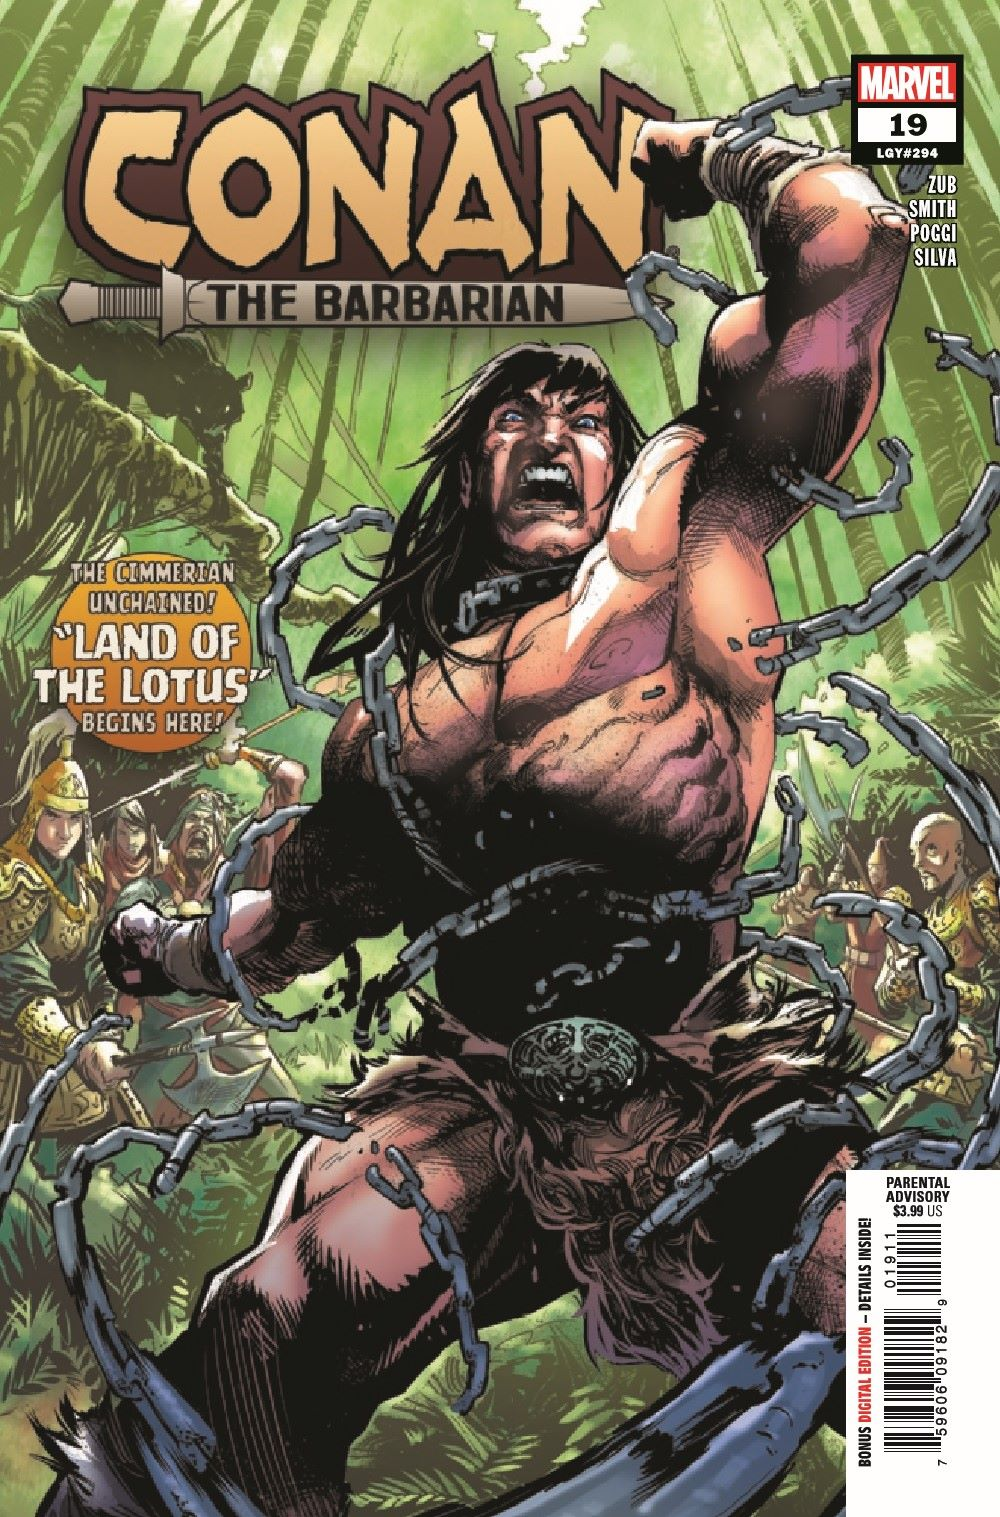 CONANBARB2019019_Preview-1 ComicList Previews: CONAN THE BARBARIAN #19